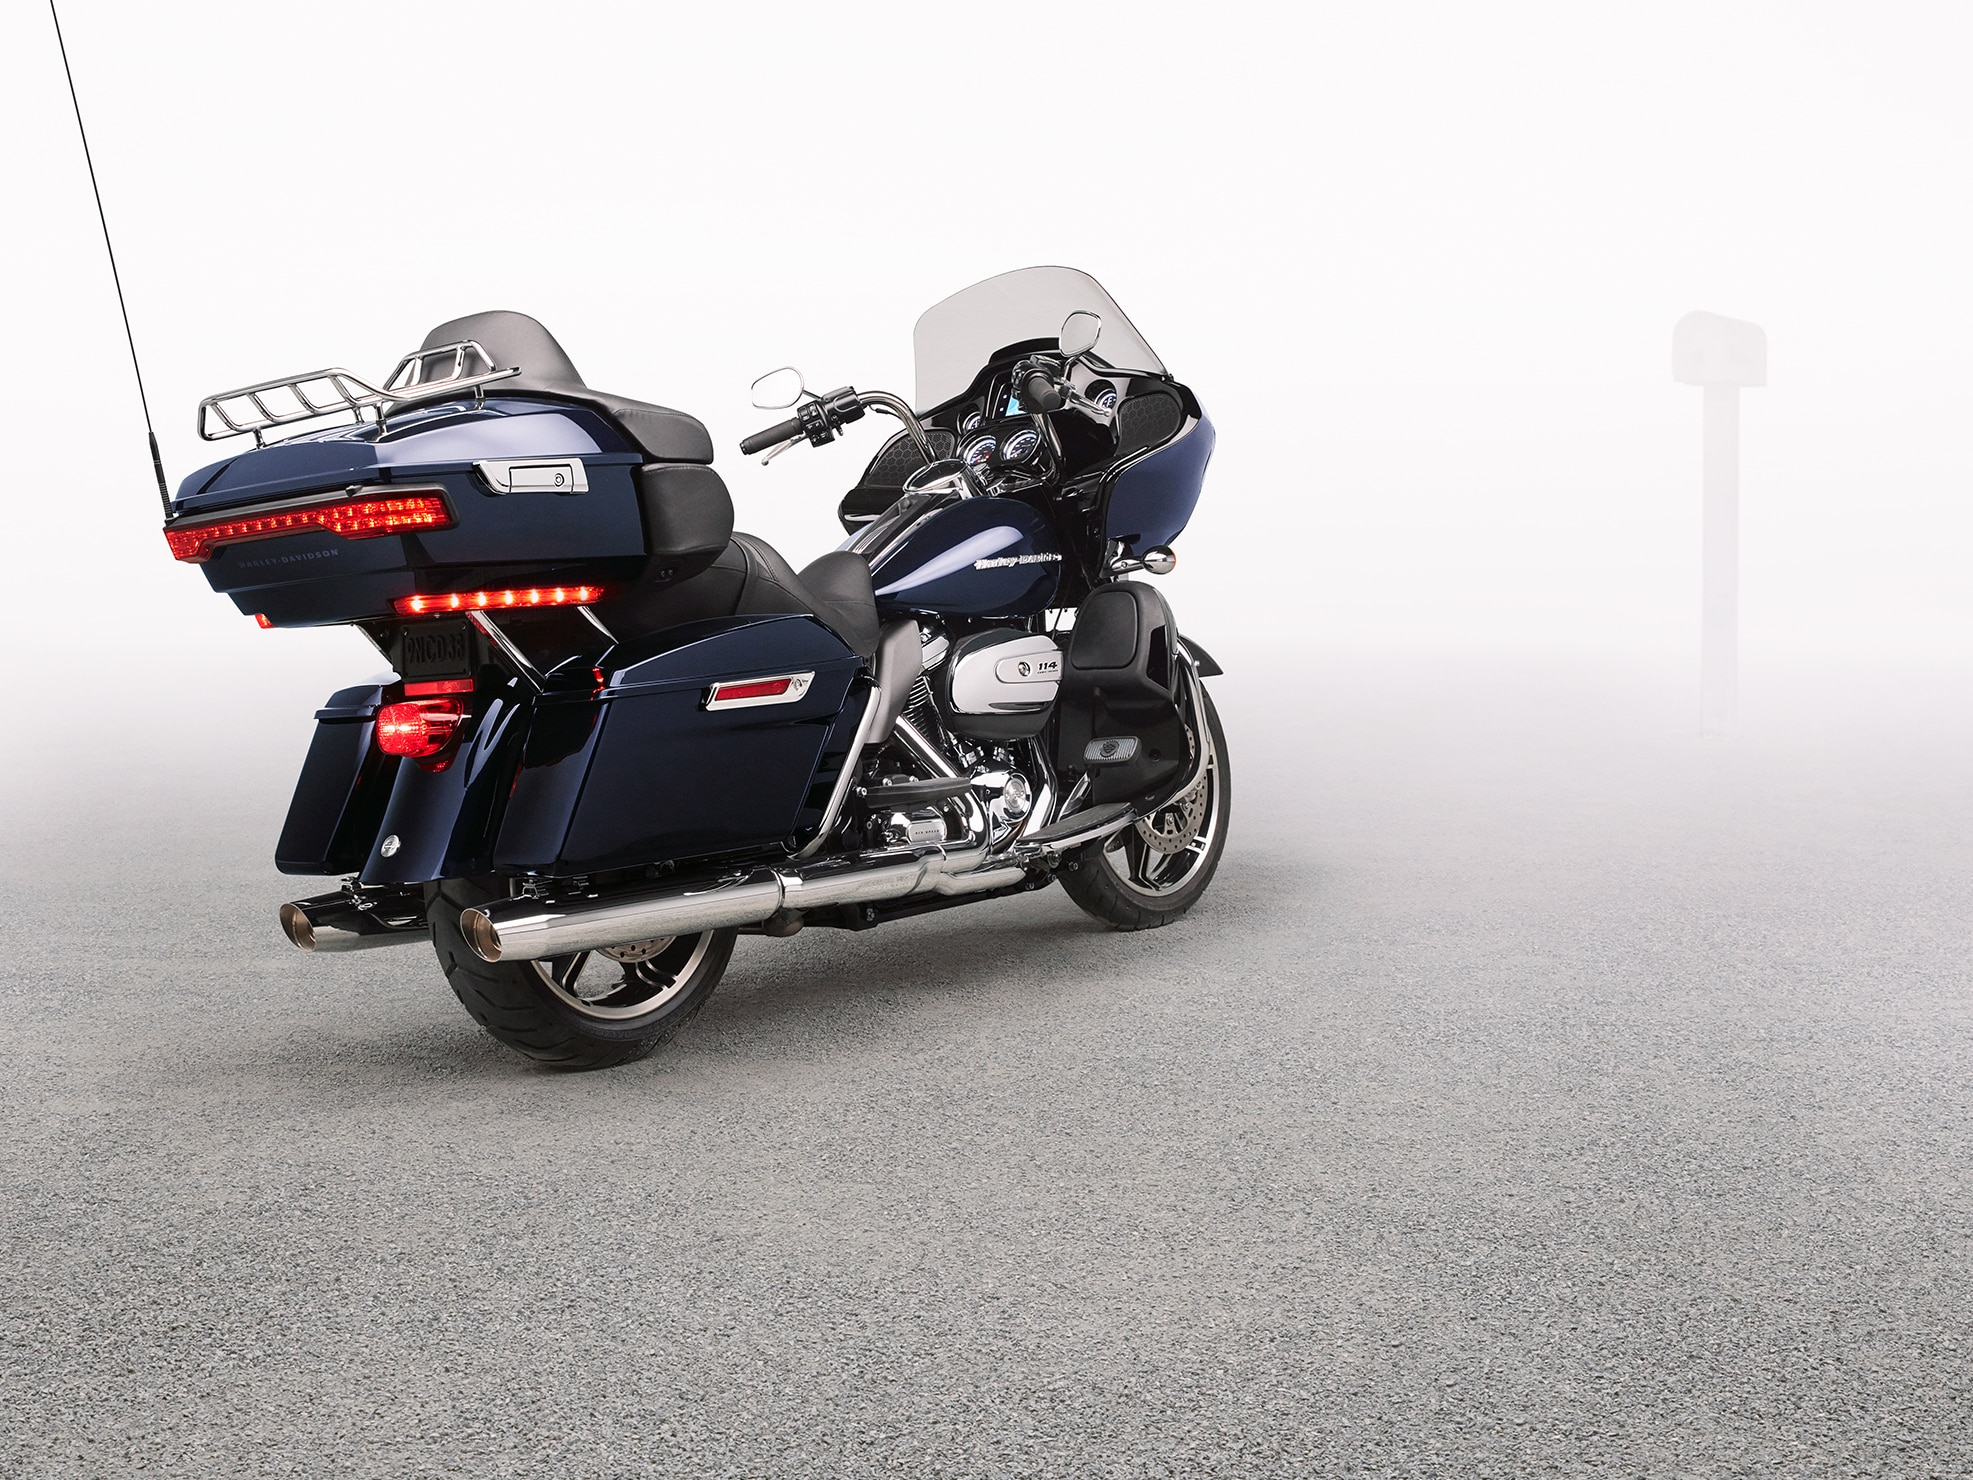 Man Riding 2019 Touring H-D Motorcycle on the Road